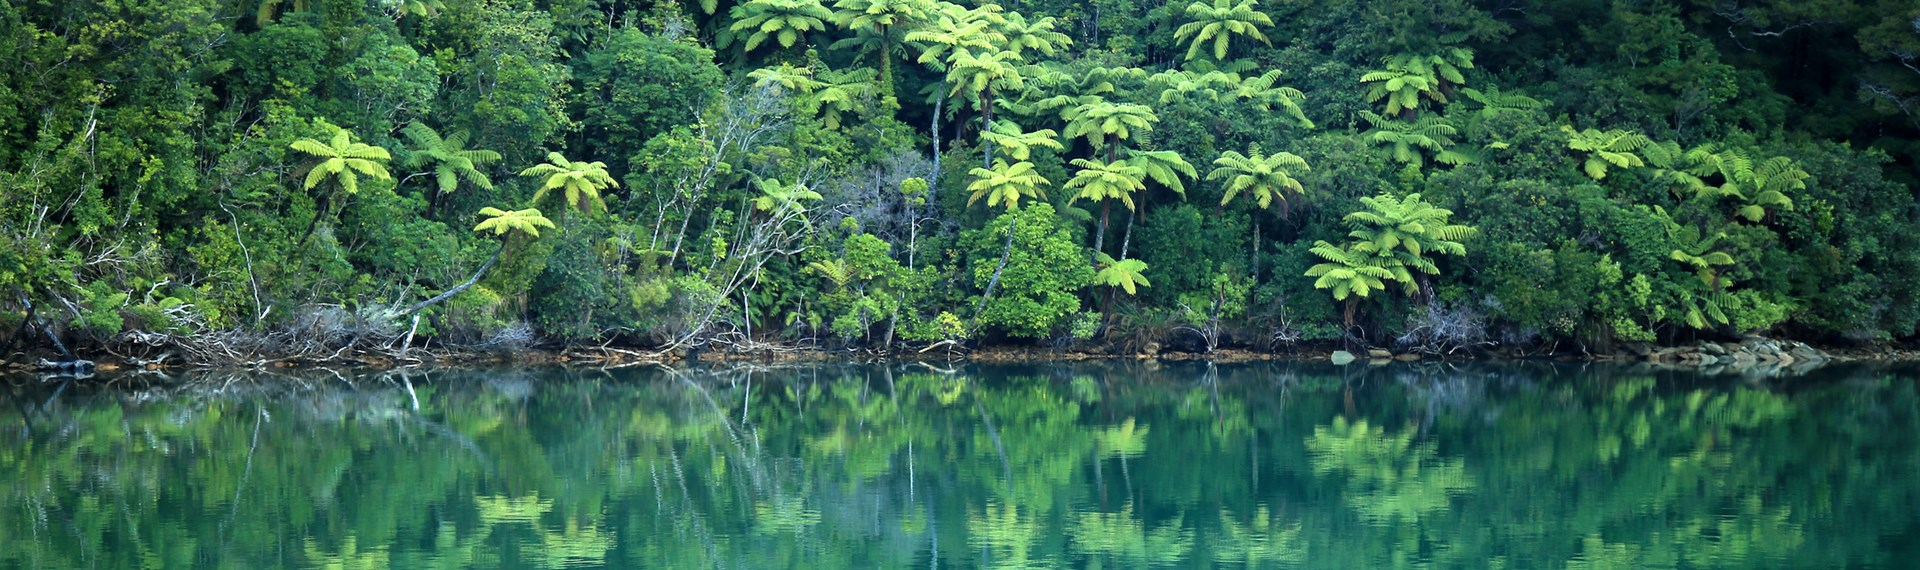 Lush green New Zealand punga tree ferns and bush are reflected in the tranquil blue waters of the Marlborough Sounds, New Zealand.